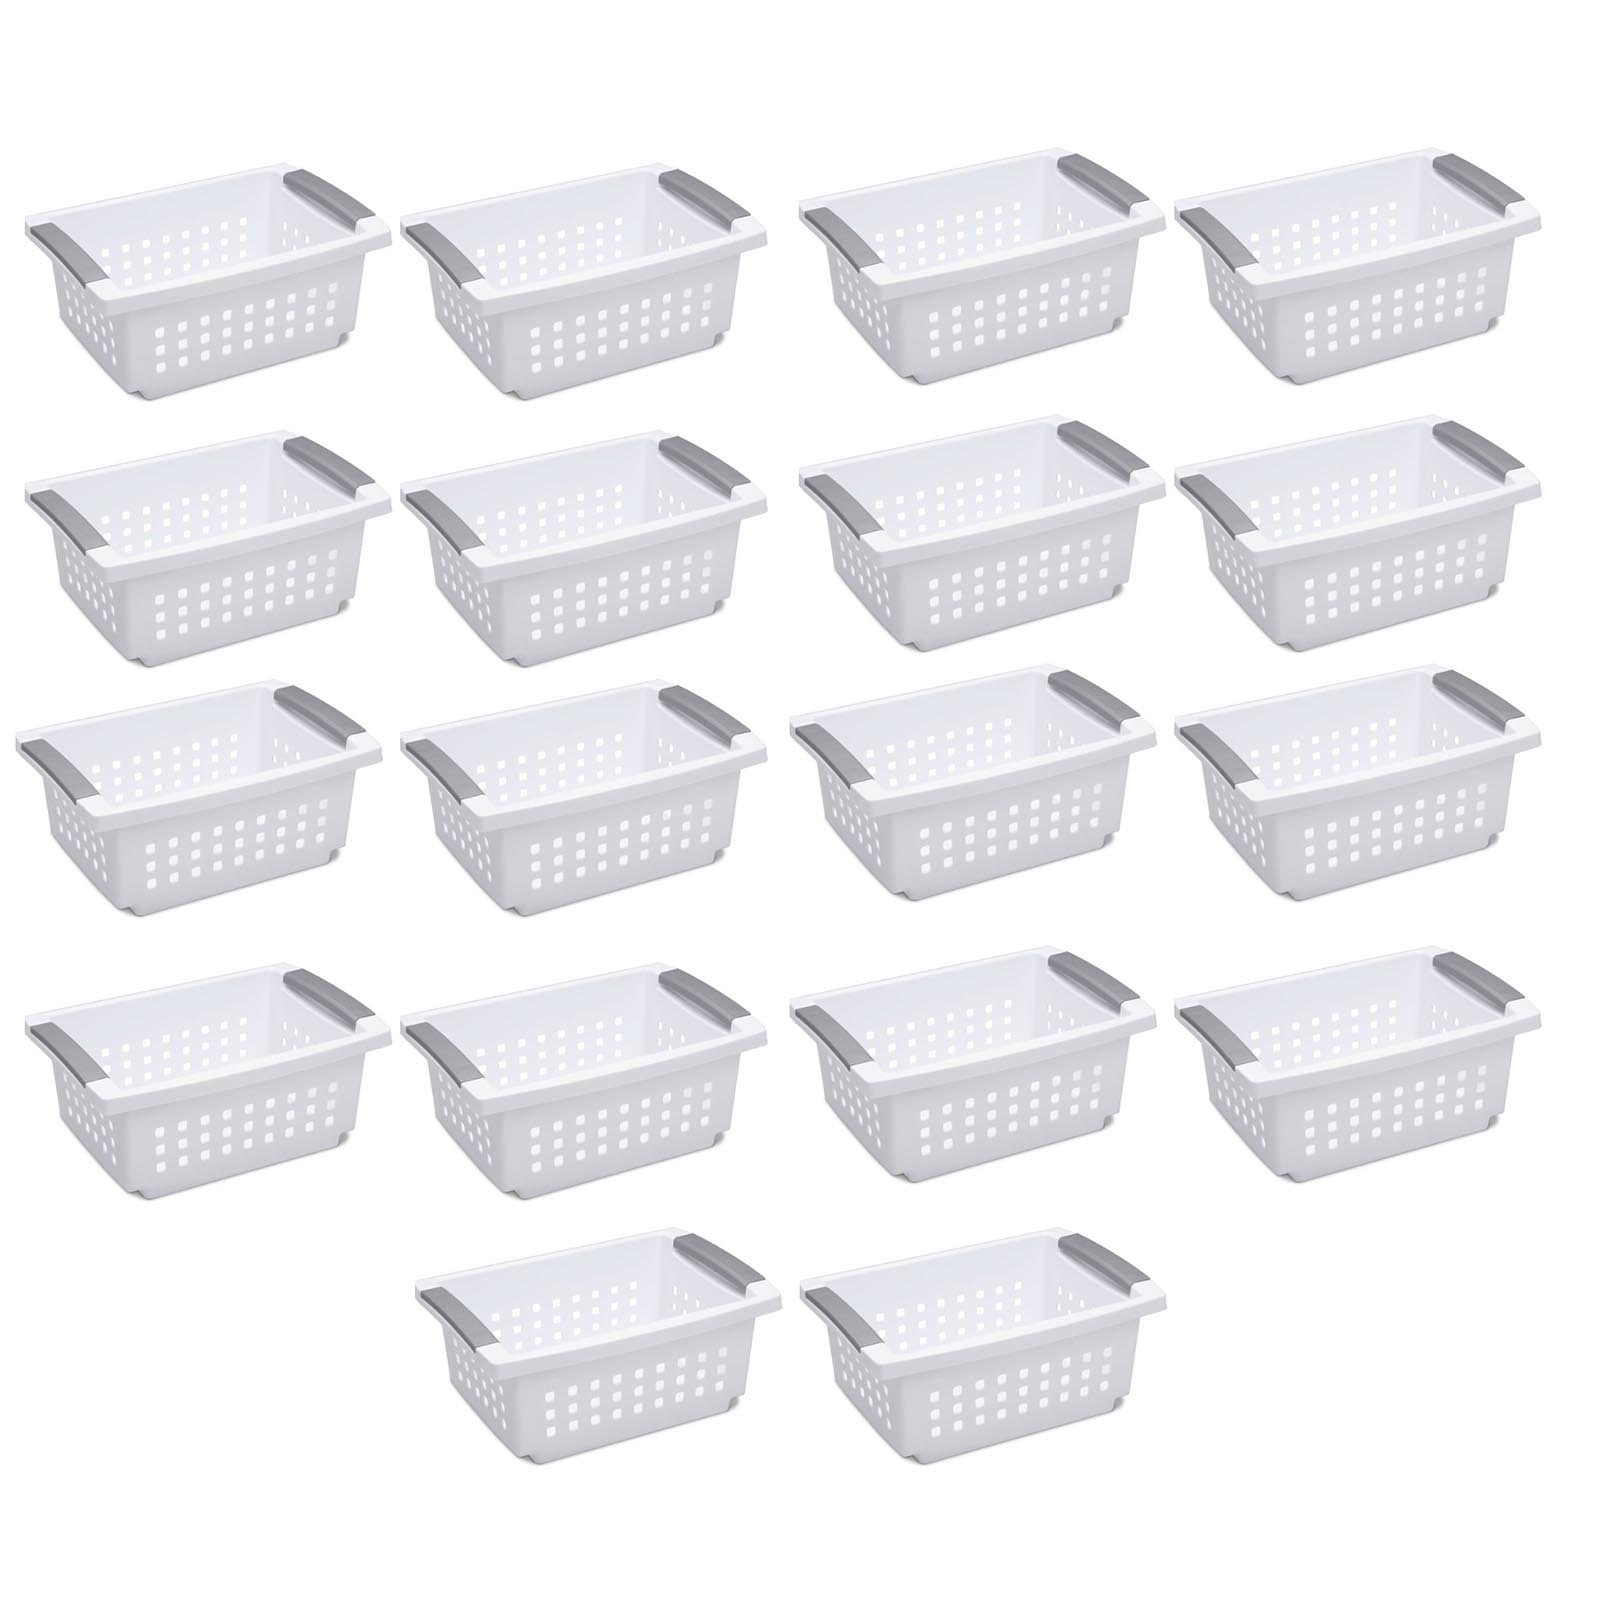 Sterilite Medium Sized White Stackable Storage and Organization Basket, 18 Pack